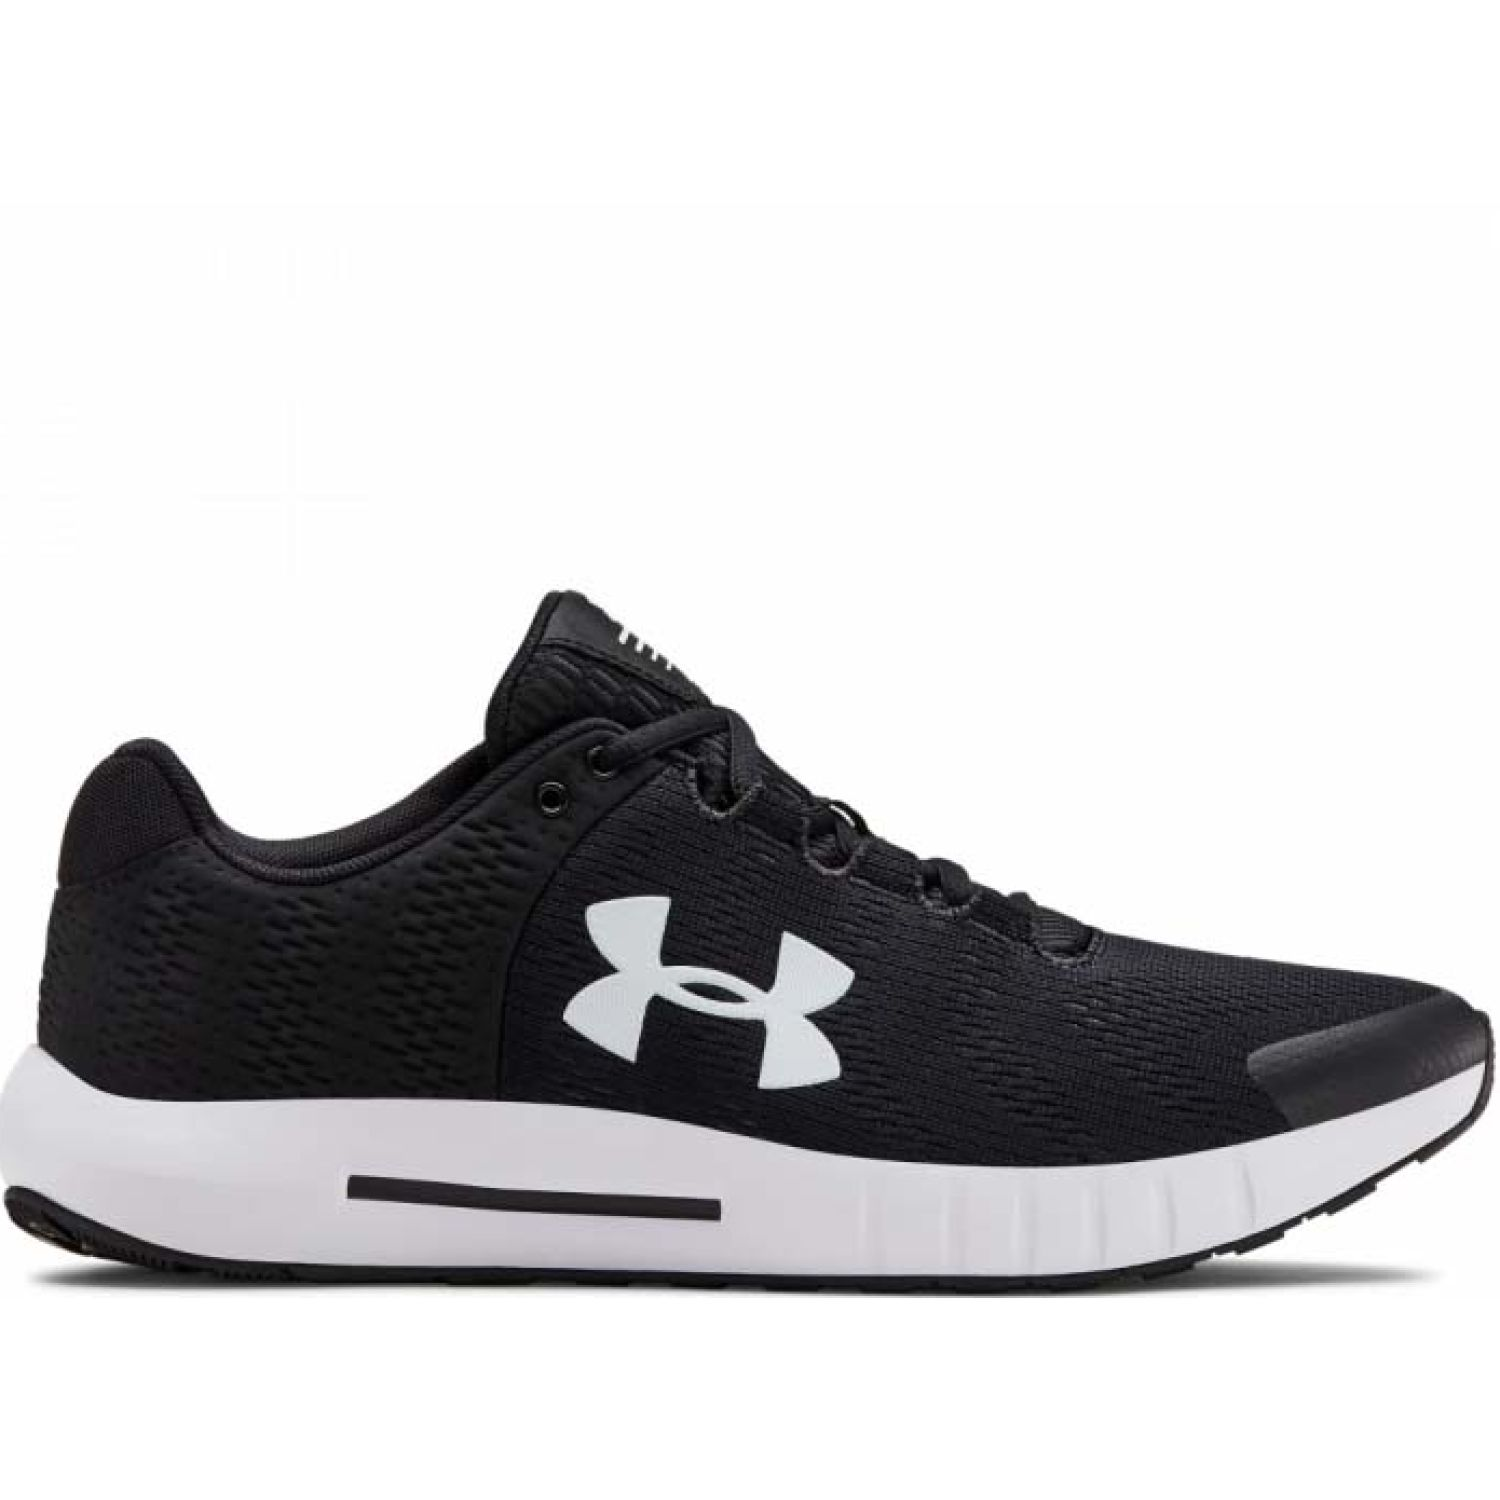 Under Armour Ua Micro G Pursuit Bp Negro Correr por carretera